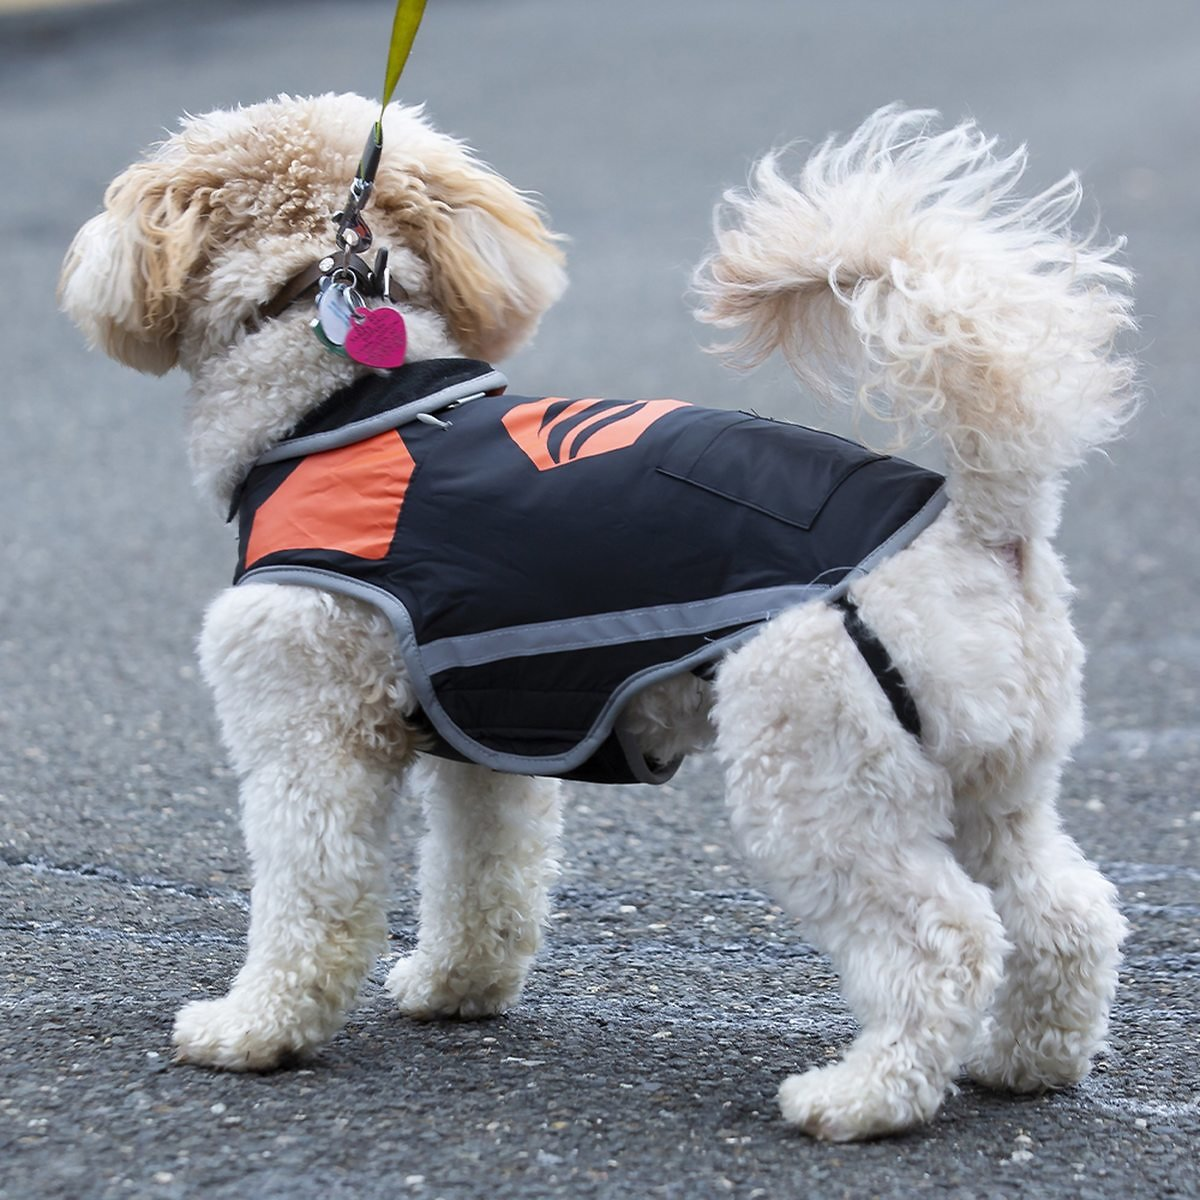 Washable Heated Dog Vest with Rechargeable Battery